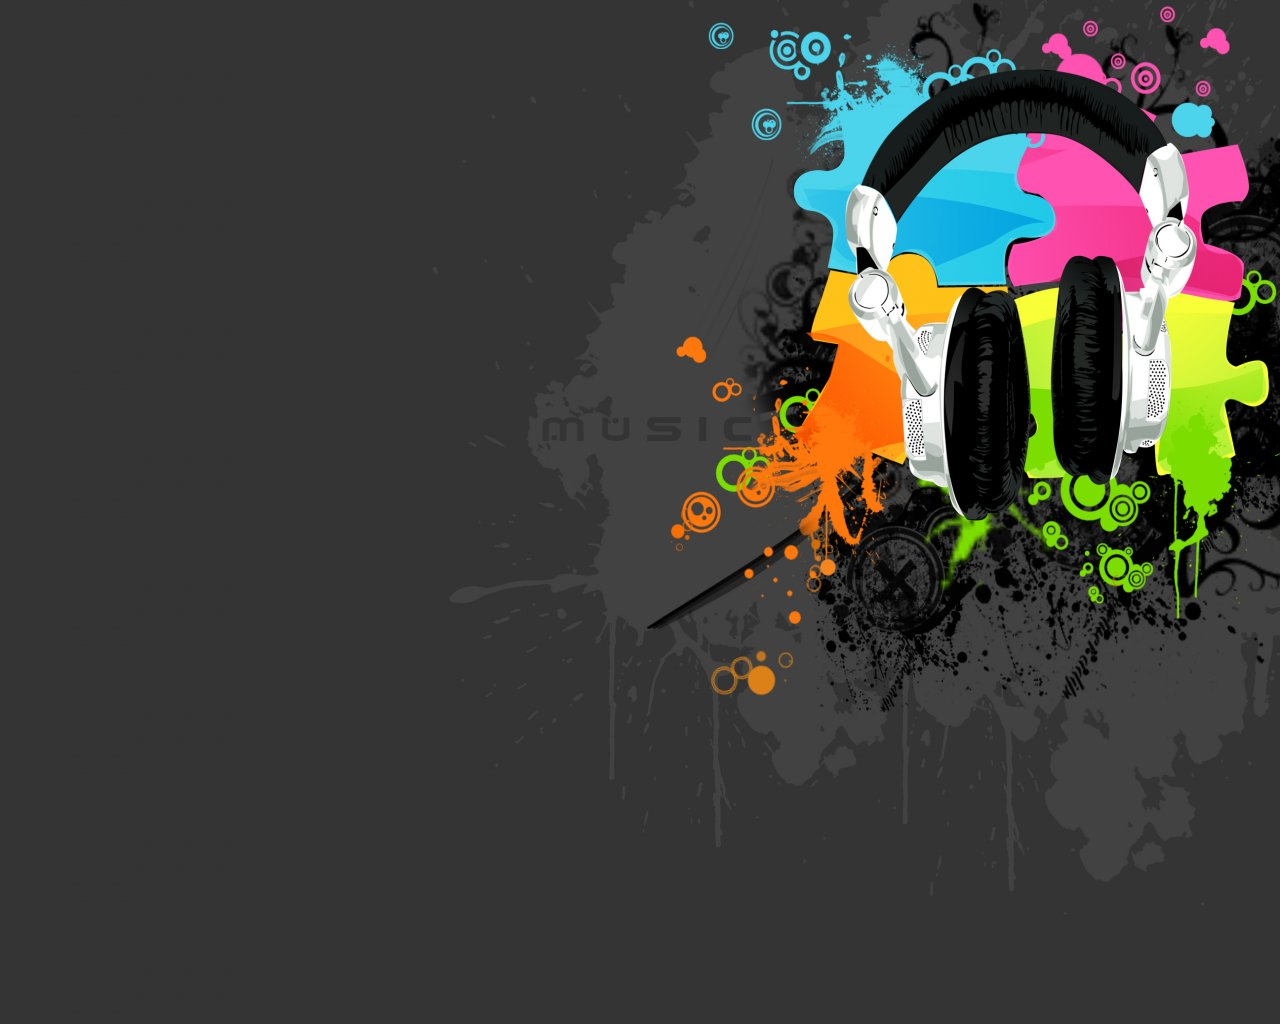 Cool music Background Wallpapers C a r W a l l p a p e r 2015 1280x1024